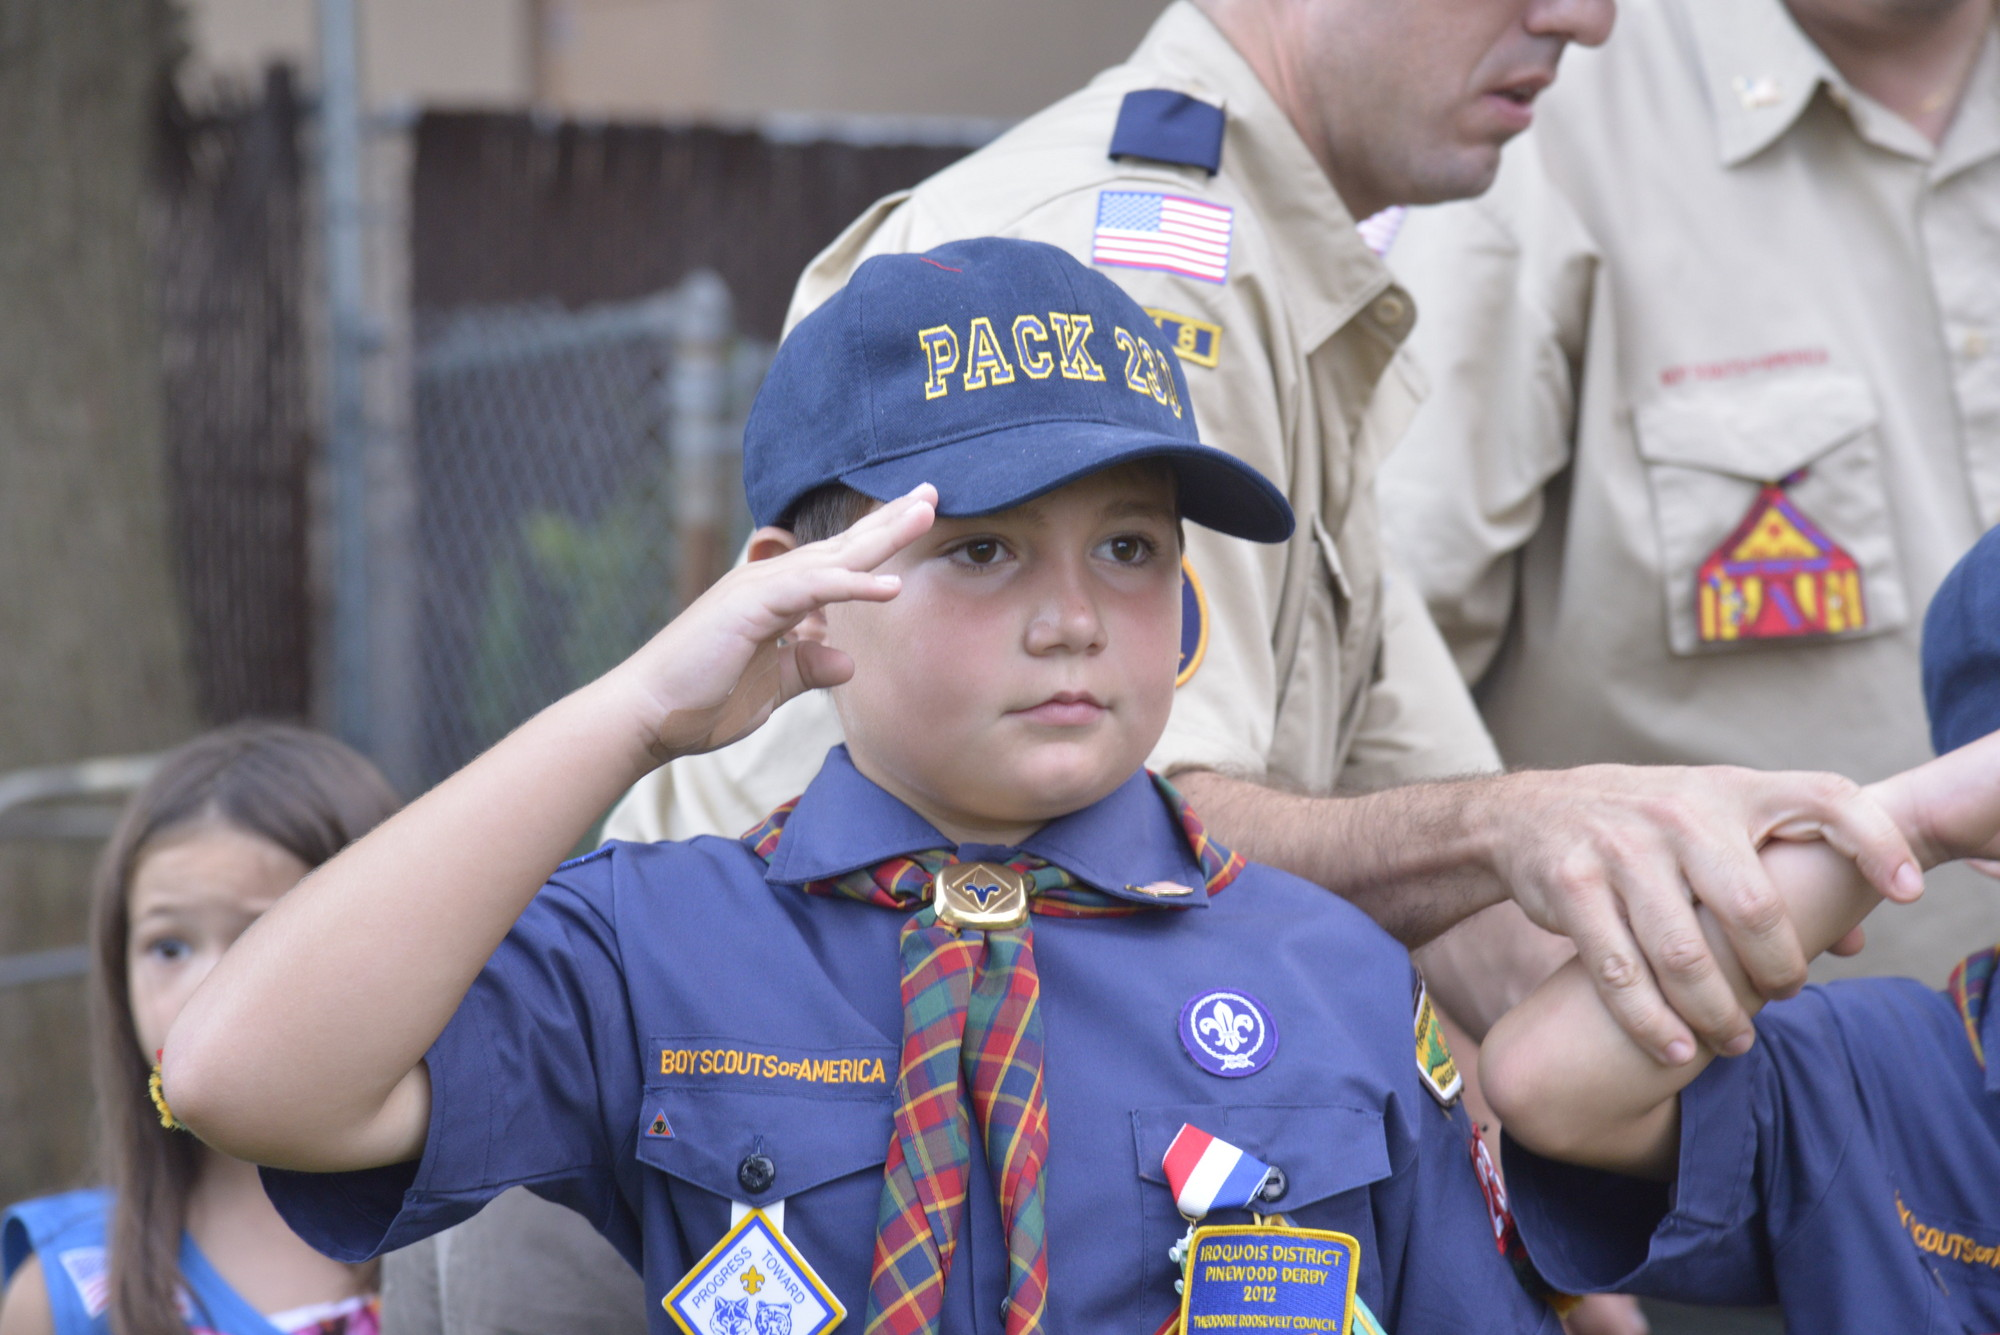 Cub Scout Nicholas Piancintino from Den 8, Pack 230 in Oceanside.